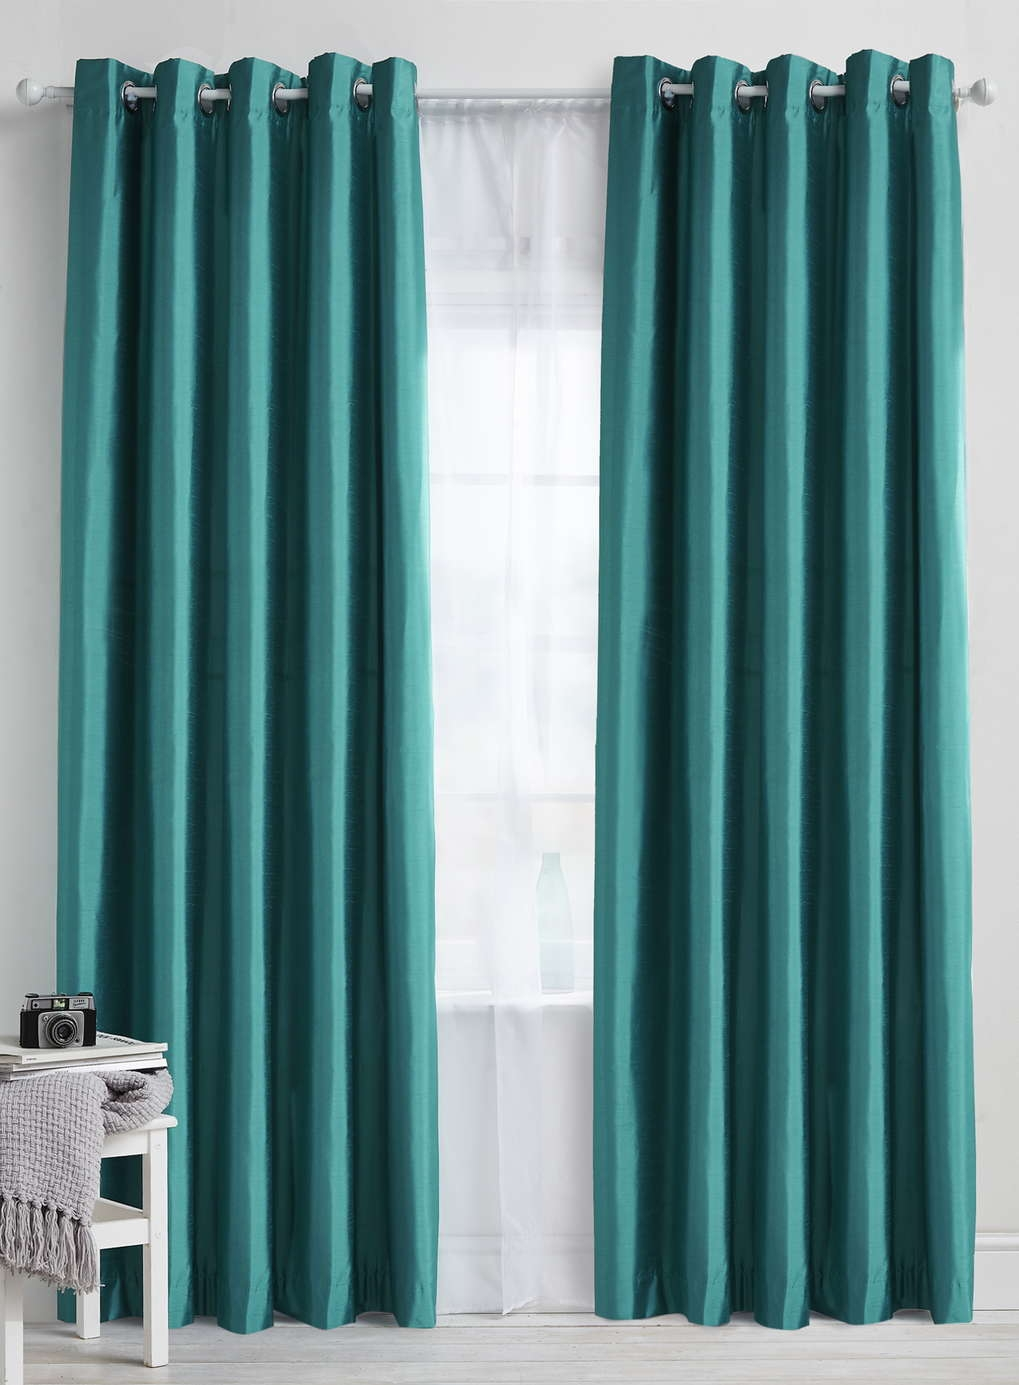 Teal Plain Faux Silk Blackoutthermal Eyelet Curtain Bhs For Blue Blackout Curtains Eyelet (Image 15 of 15)